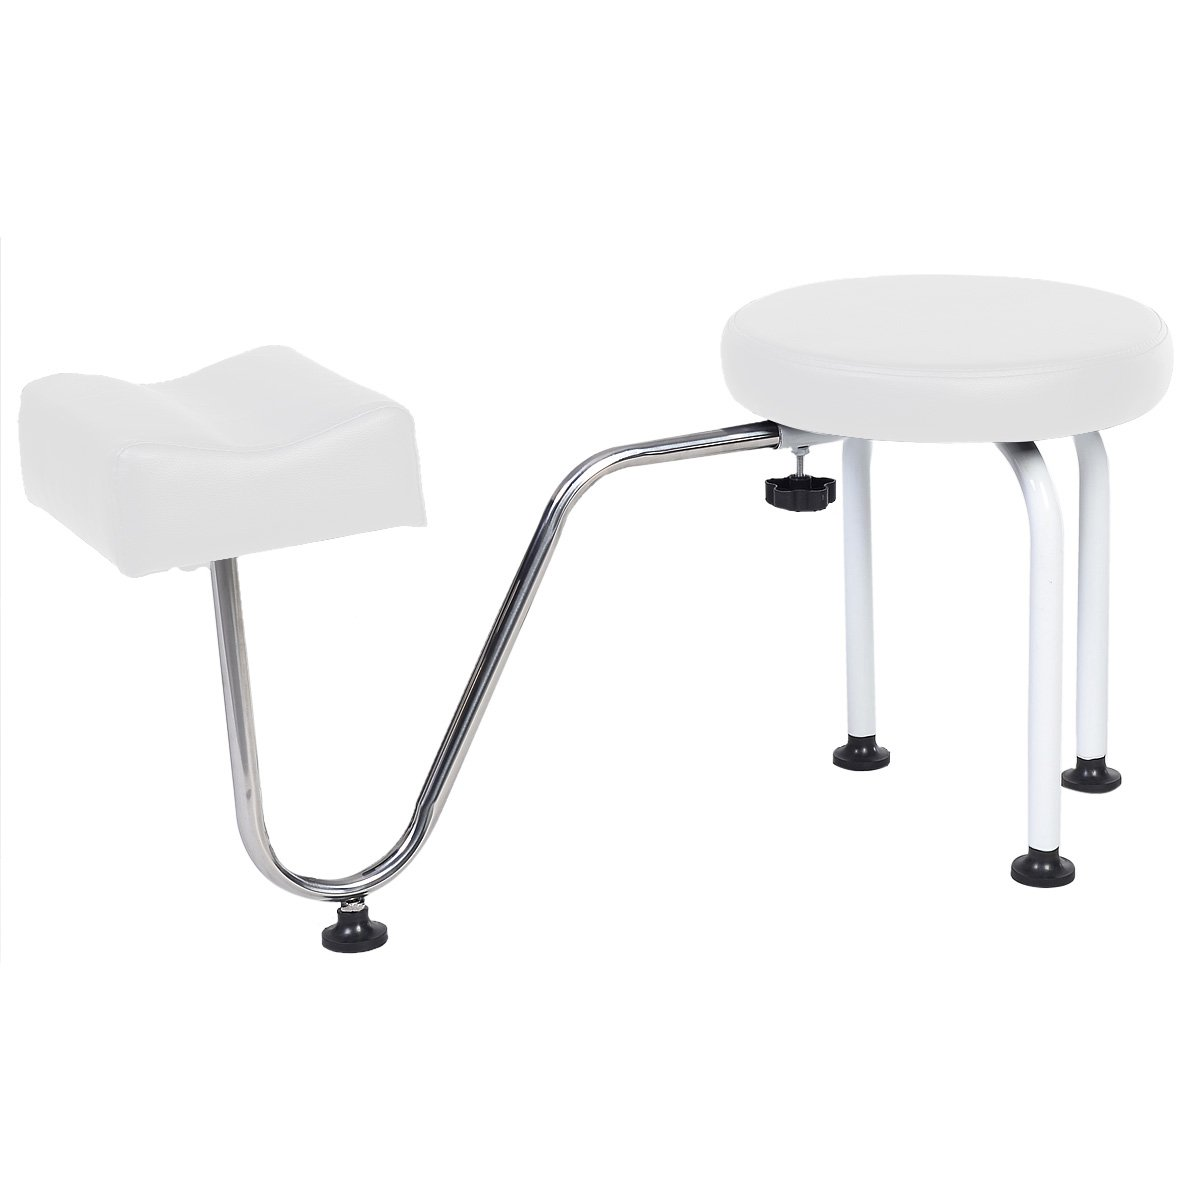 Costway Pedicure Nail Stool Station Manicure Tattoo Foot Footrests Adjustable Leg Rest Chair Kit (Black)